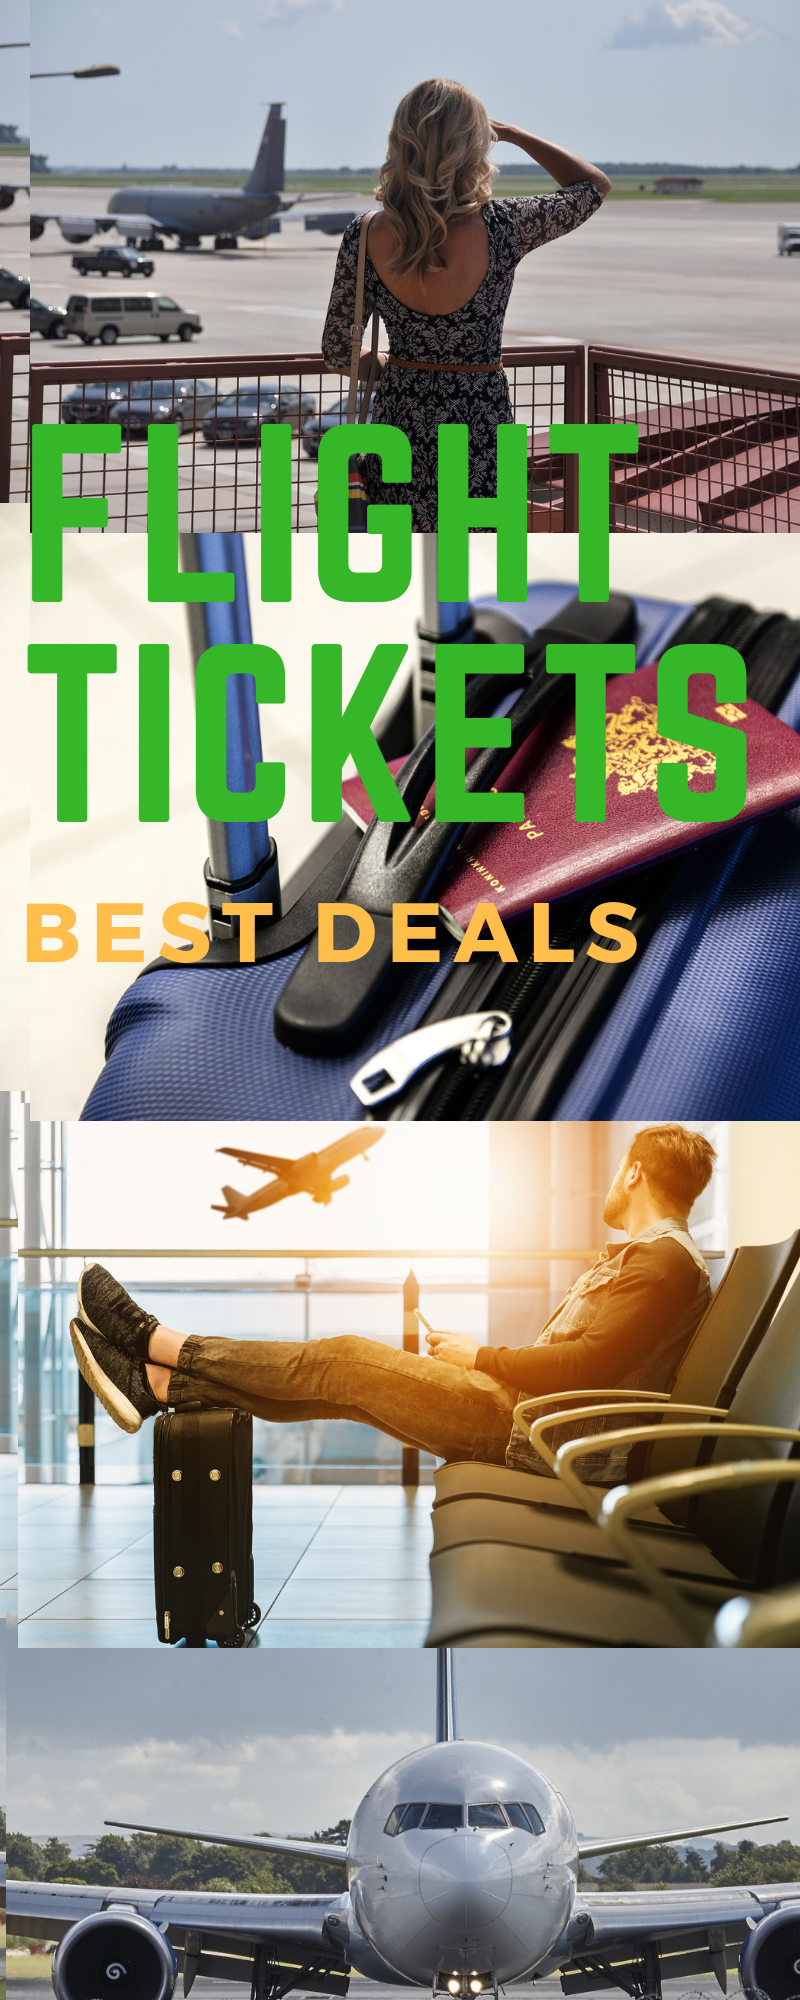 Cheap flight tickets anywhere - Are you looking to find plane tickets?  Compare flight costs from top travel si… | Flight ticket, Cheap flight  tickets, Cheap flights